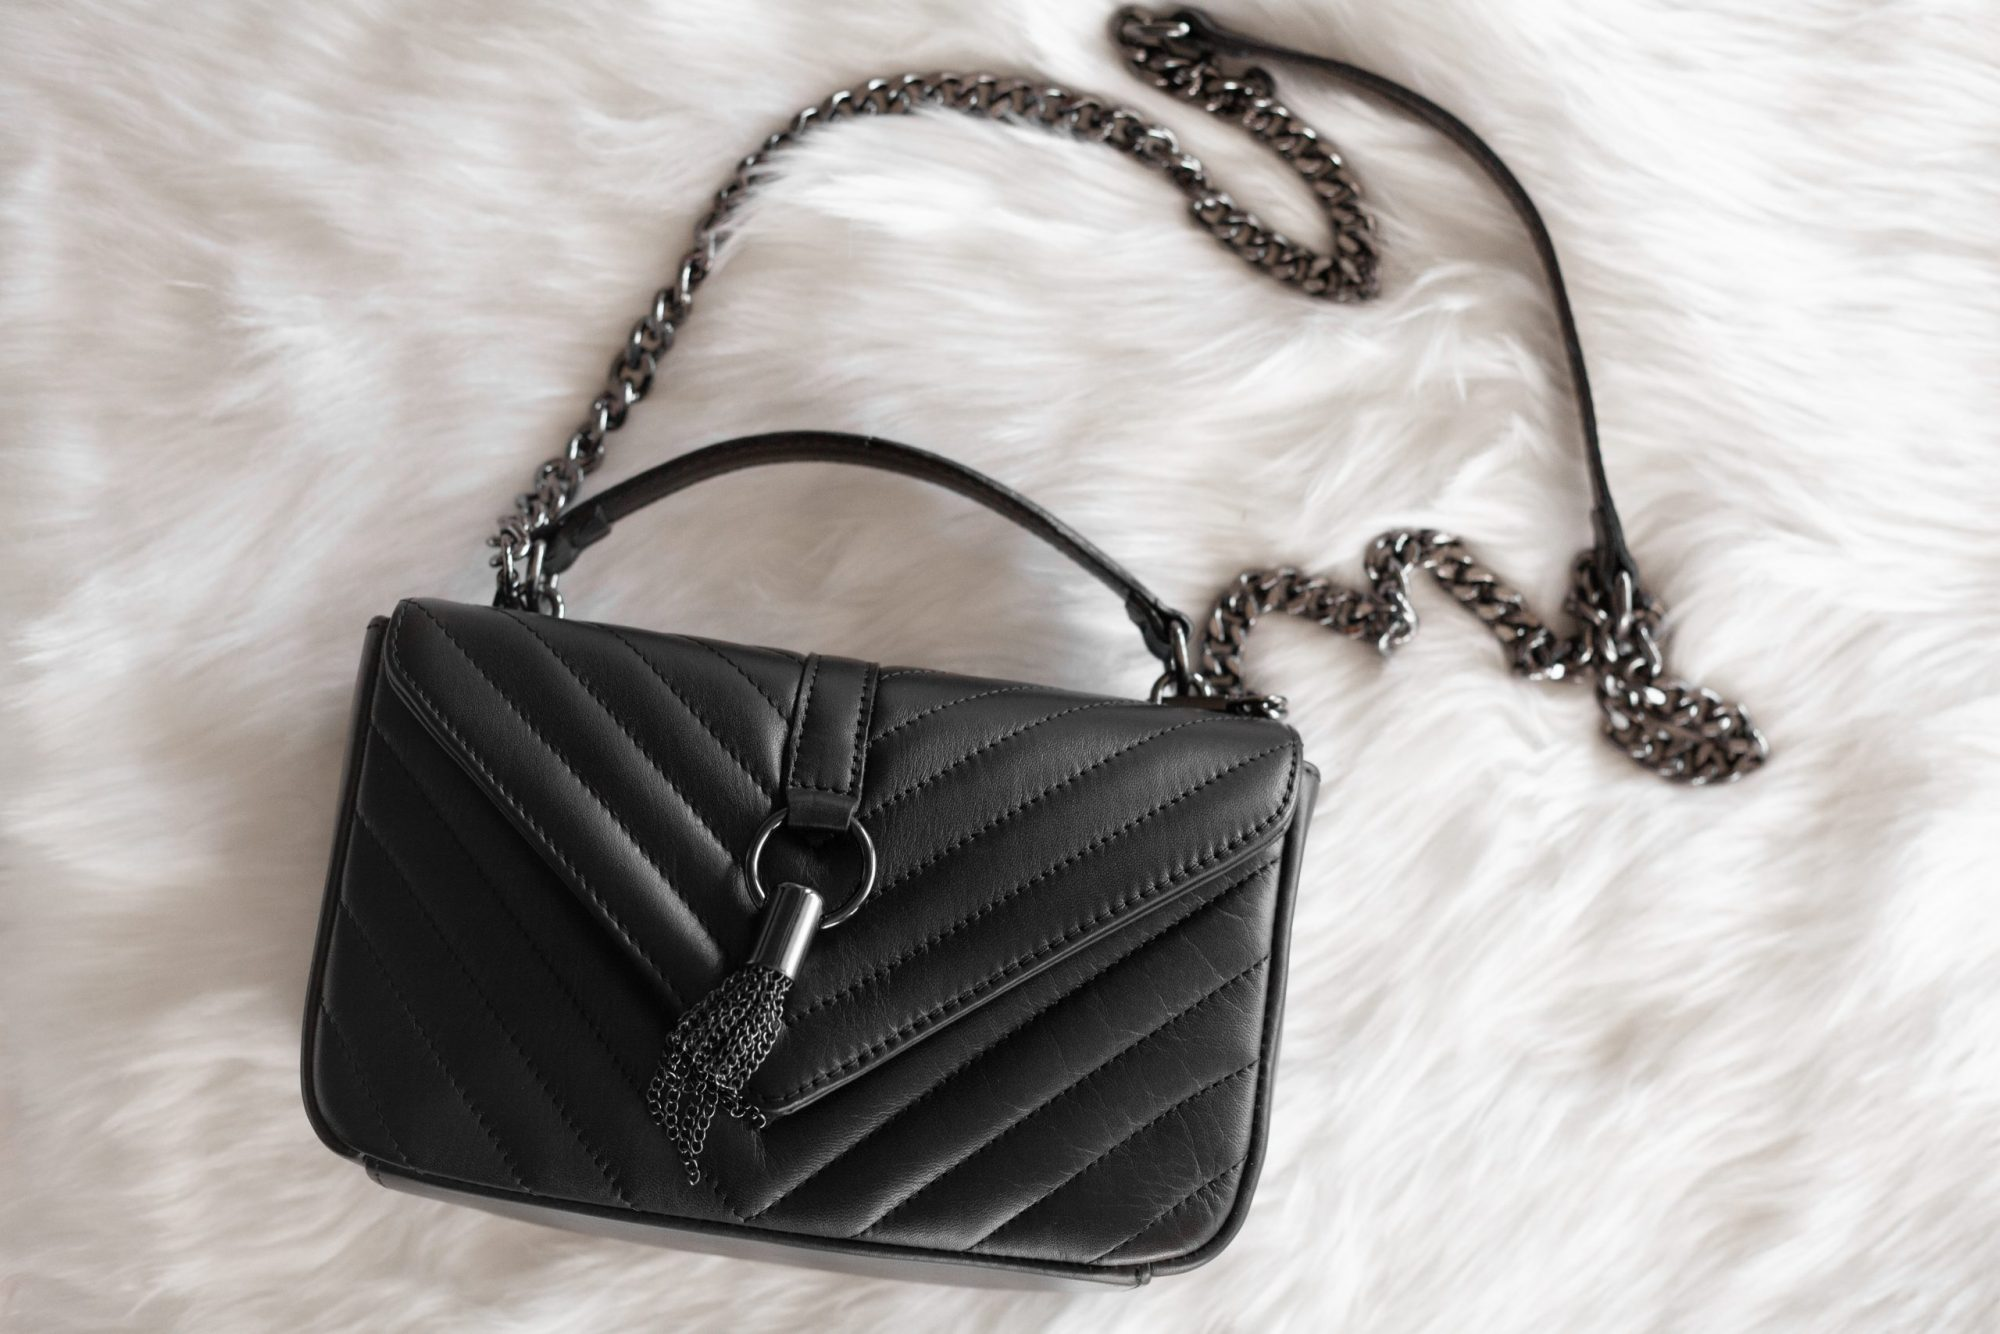 Italian leather handbag by Fashion Drug